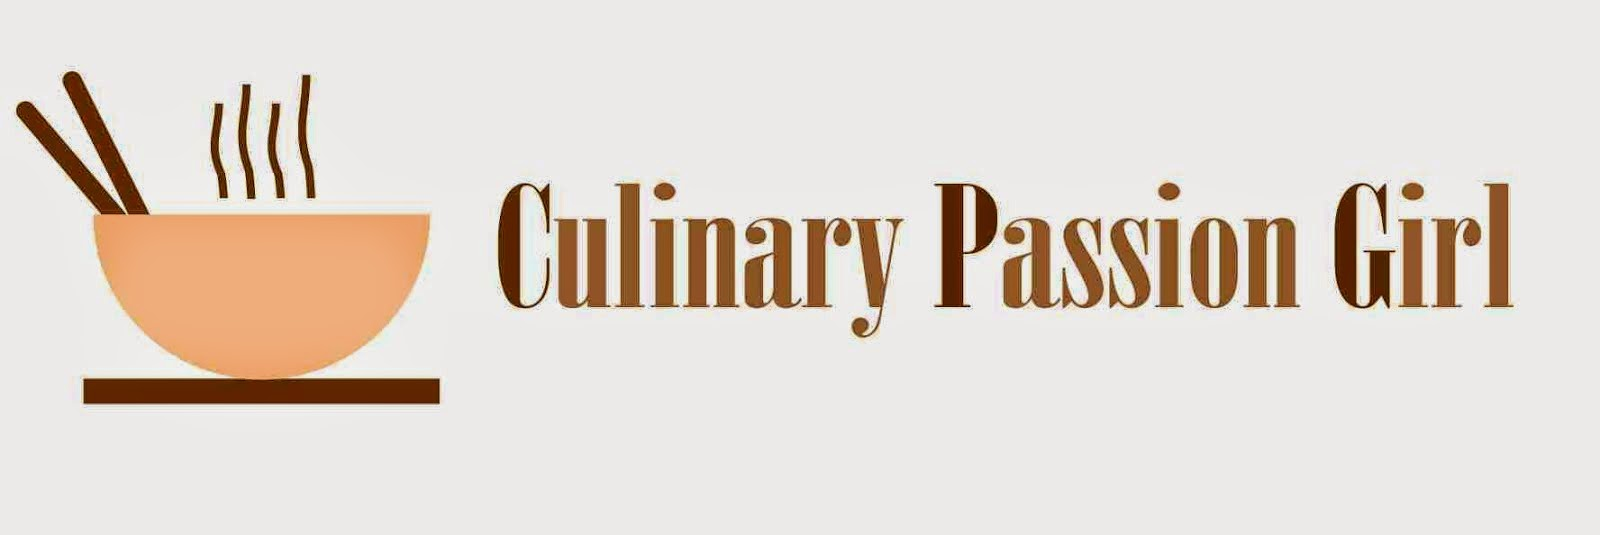 Culinary Passion Girl